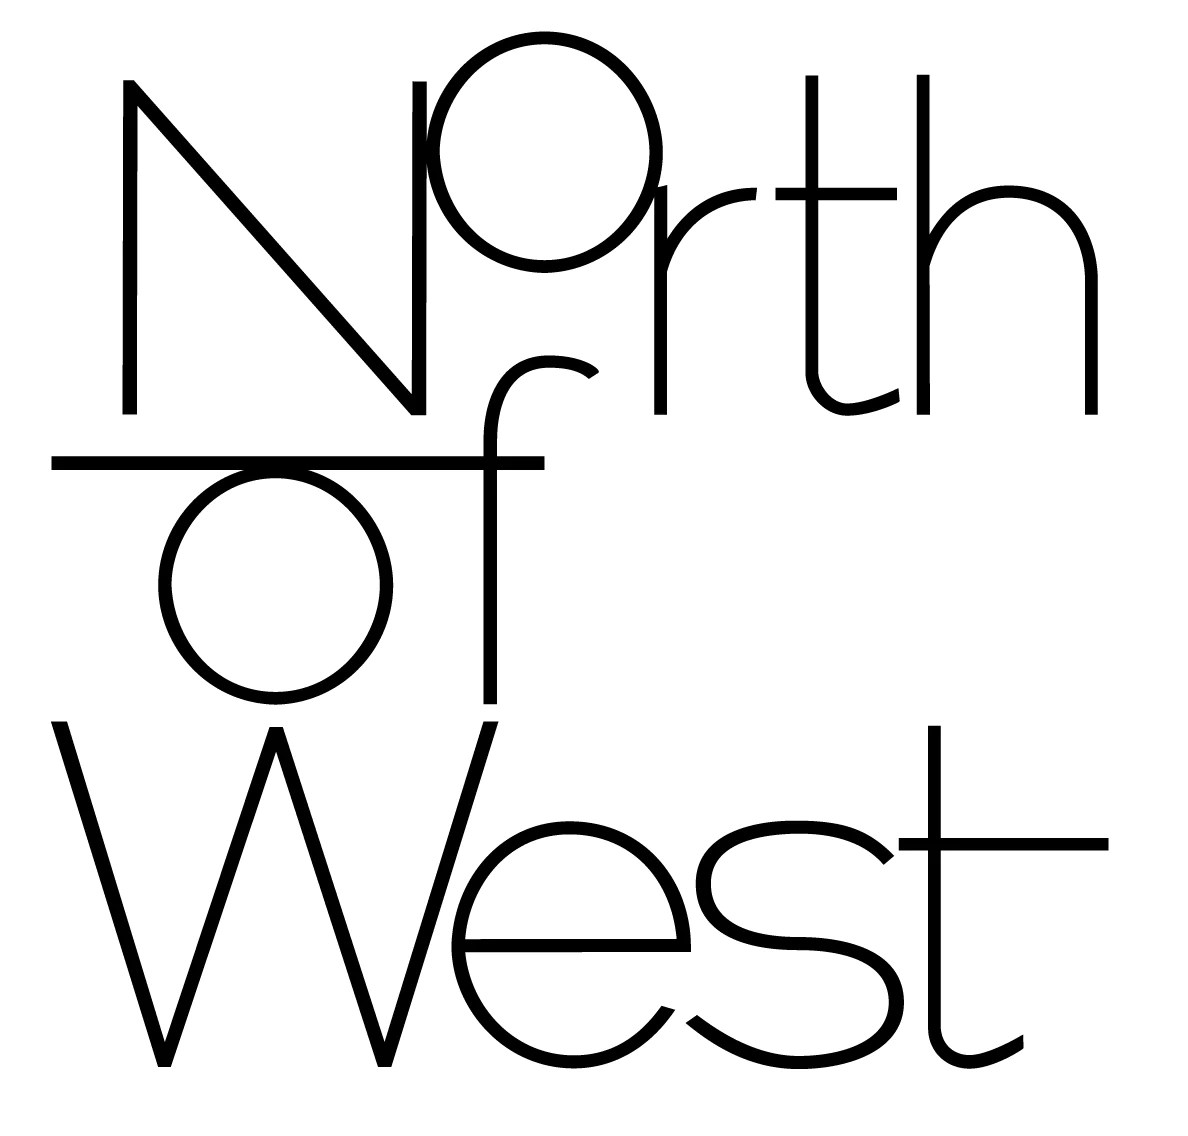 small resolution of north of west